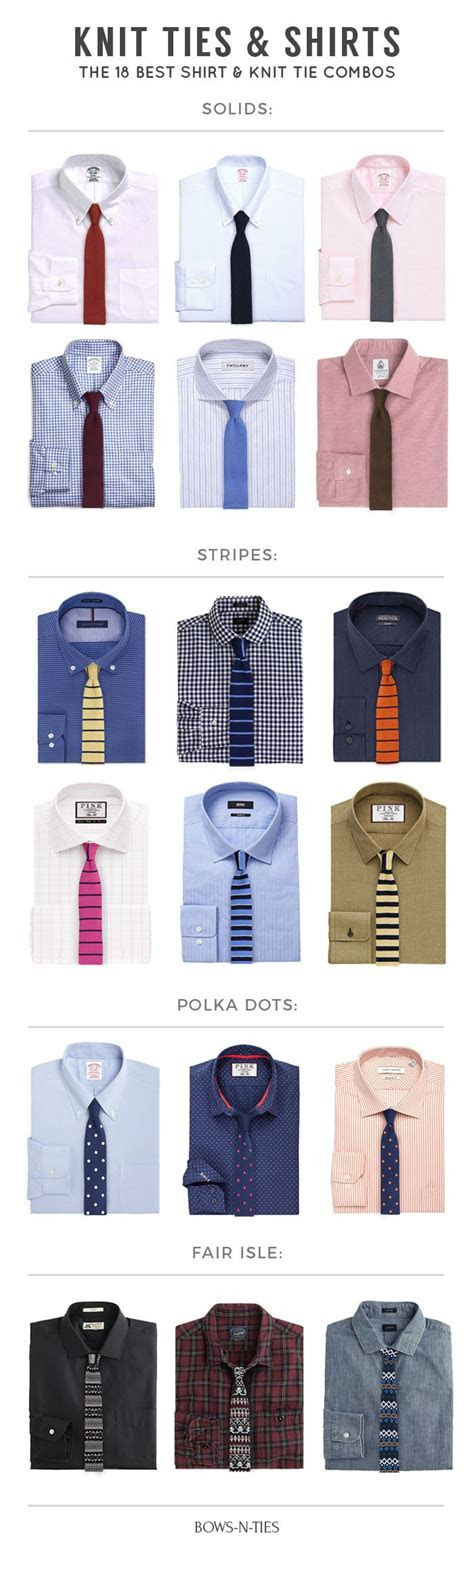 Mens style guide for the perfect tie and shirt combo